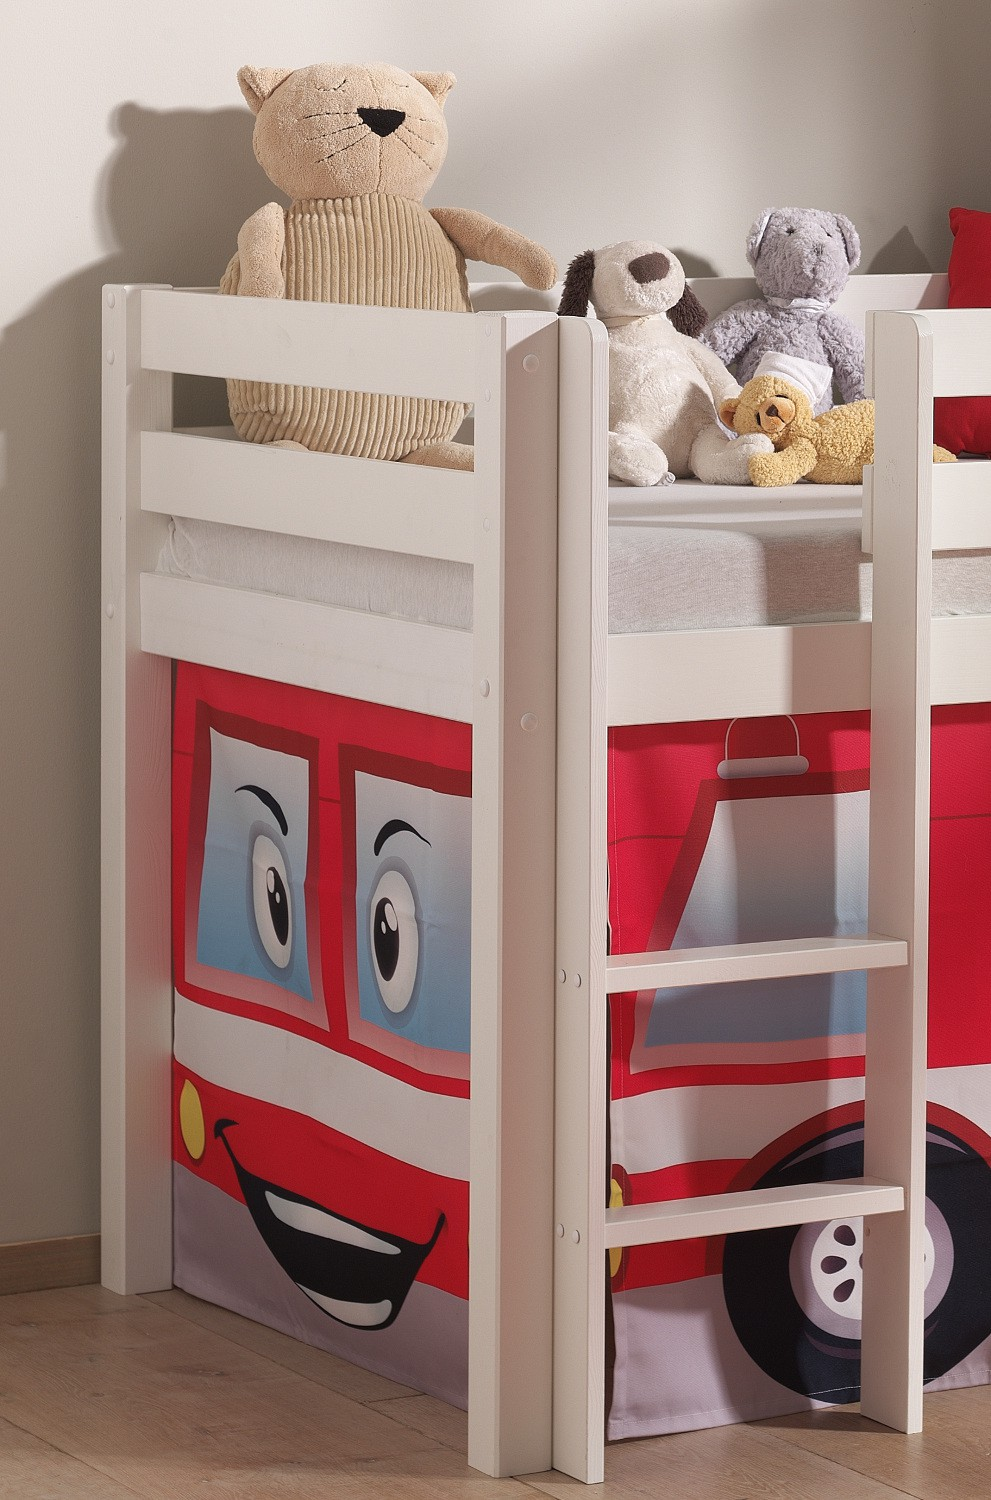 neu spielbett pino feuerwehr hochbett kinderbett rutsche 90x200cm kiefer weiss ebay. Black Bedroom Furniture Sets. Home Design Ideas